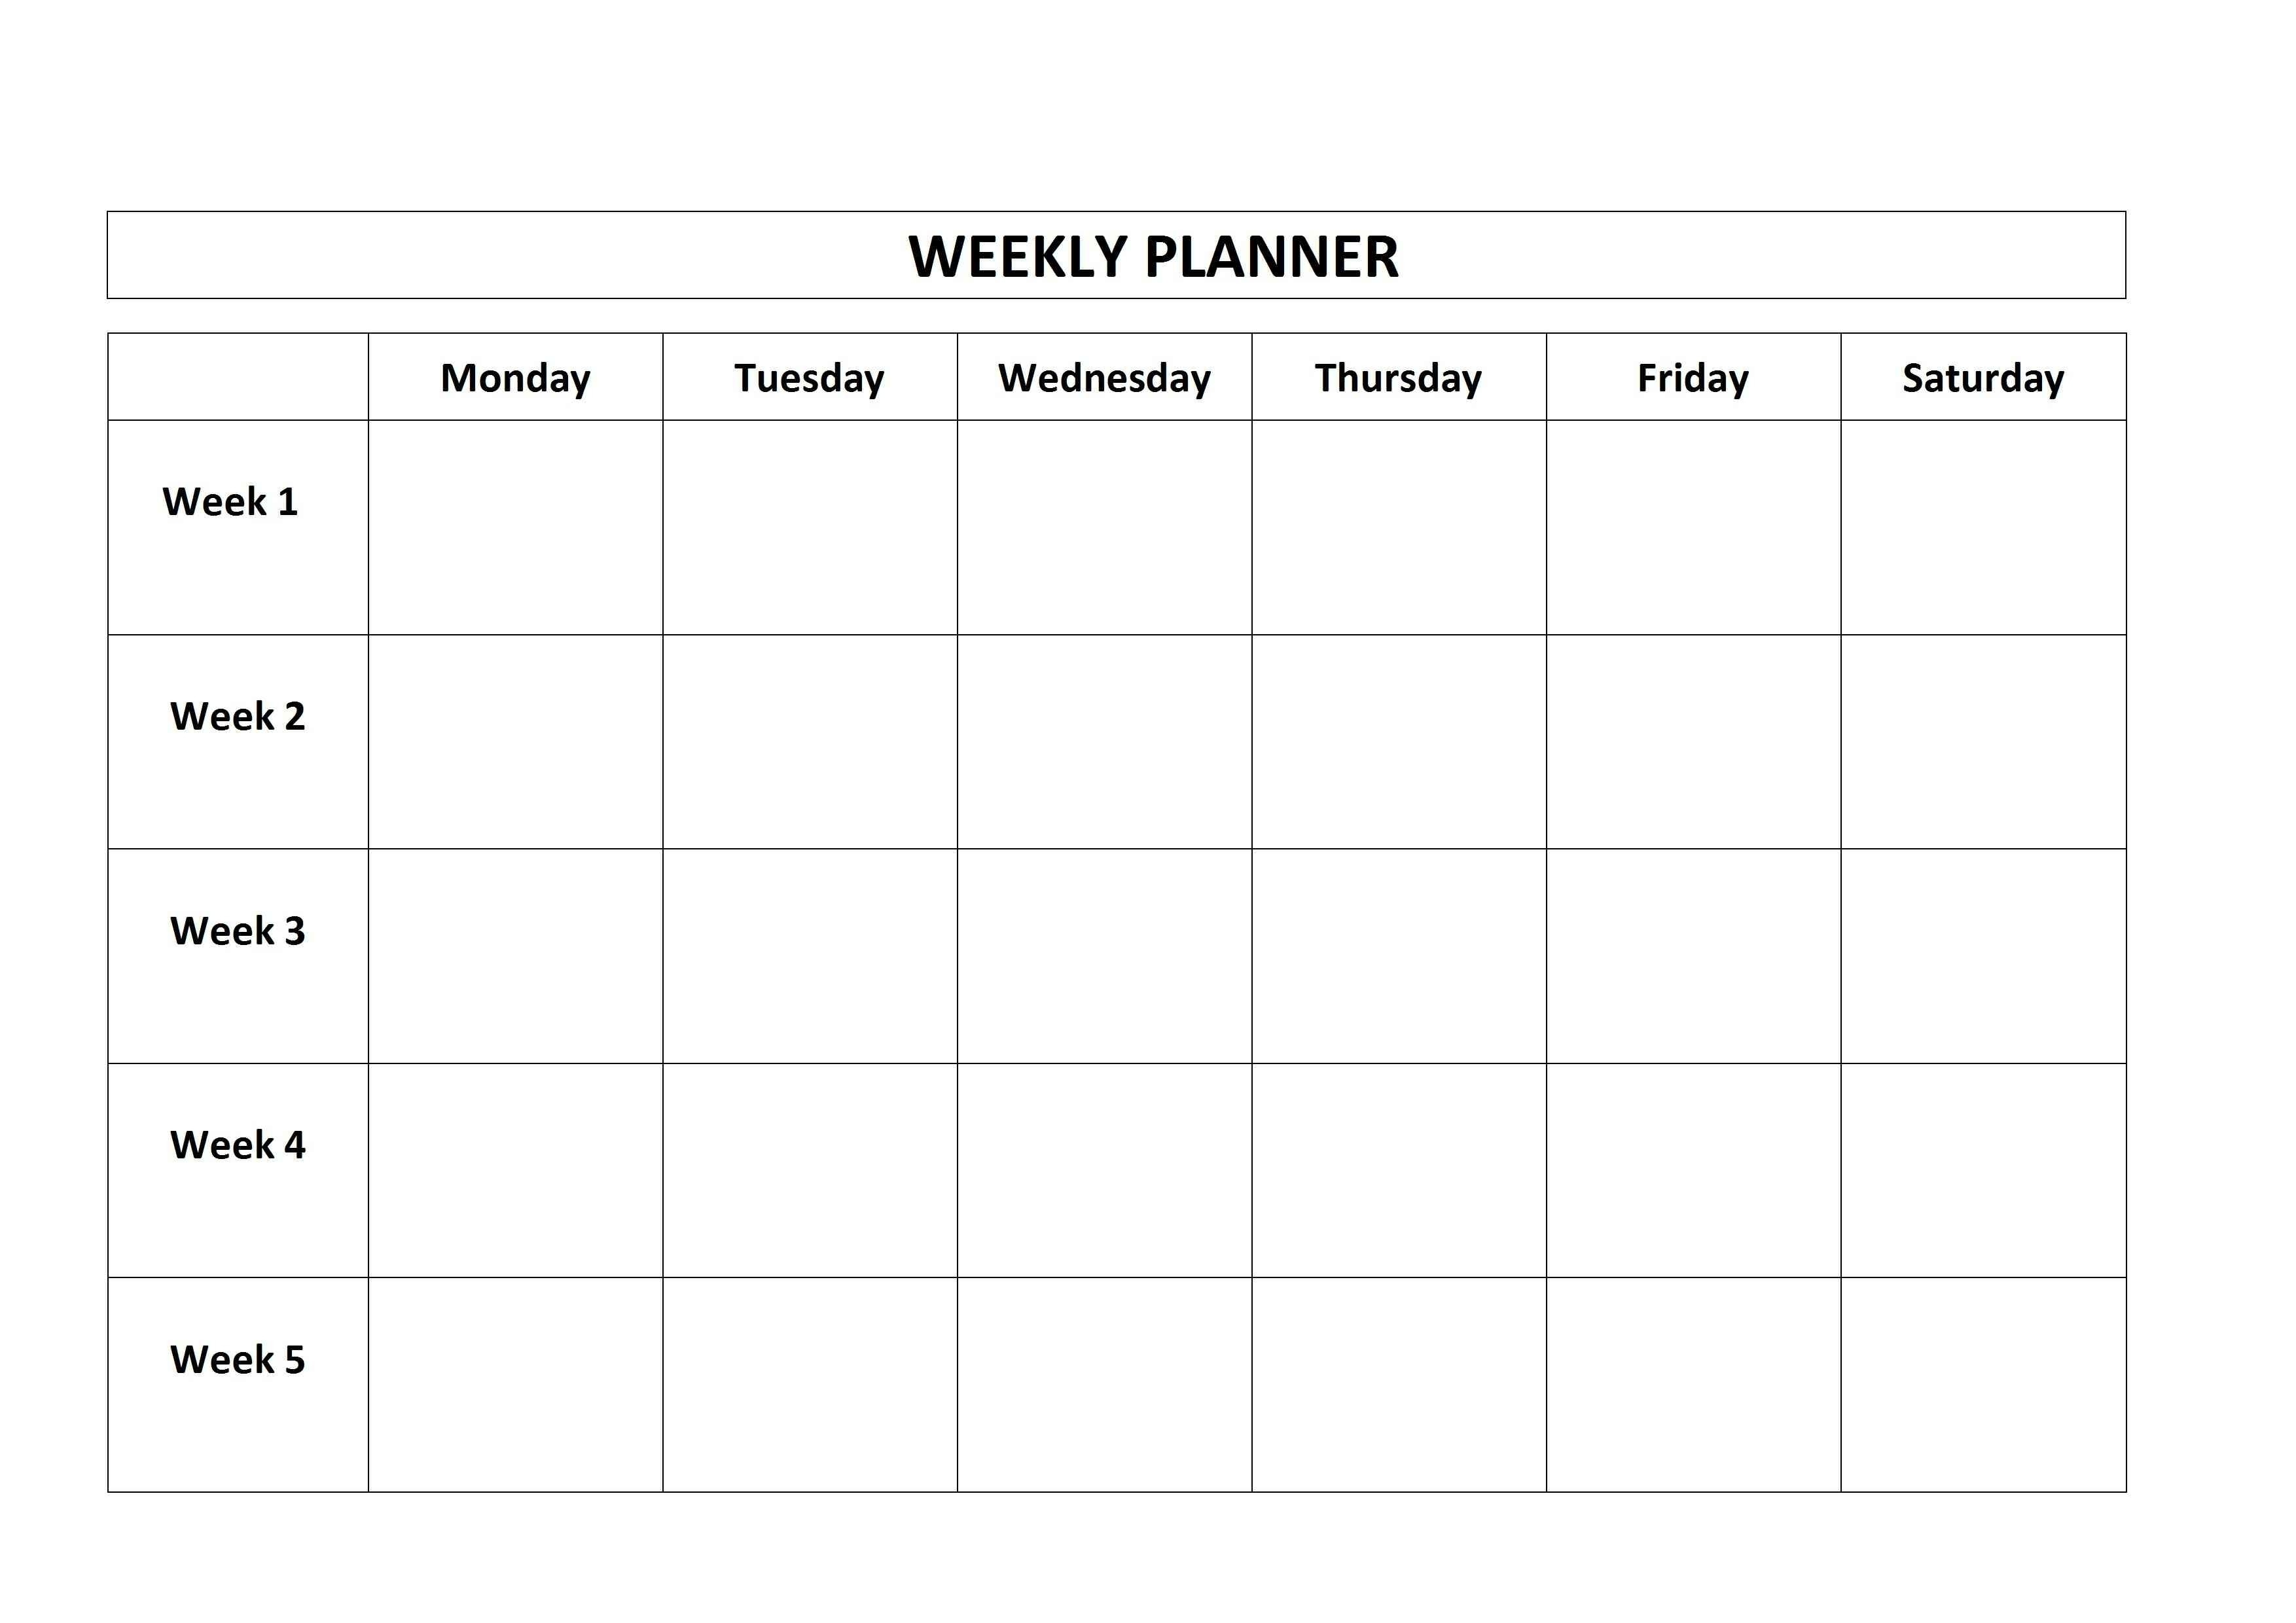 022 Two Week Calendar Template Blank Baskan Idai Co Within-Monday-Friday Blank Weekly Schedule